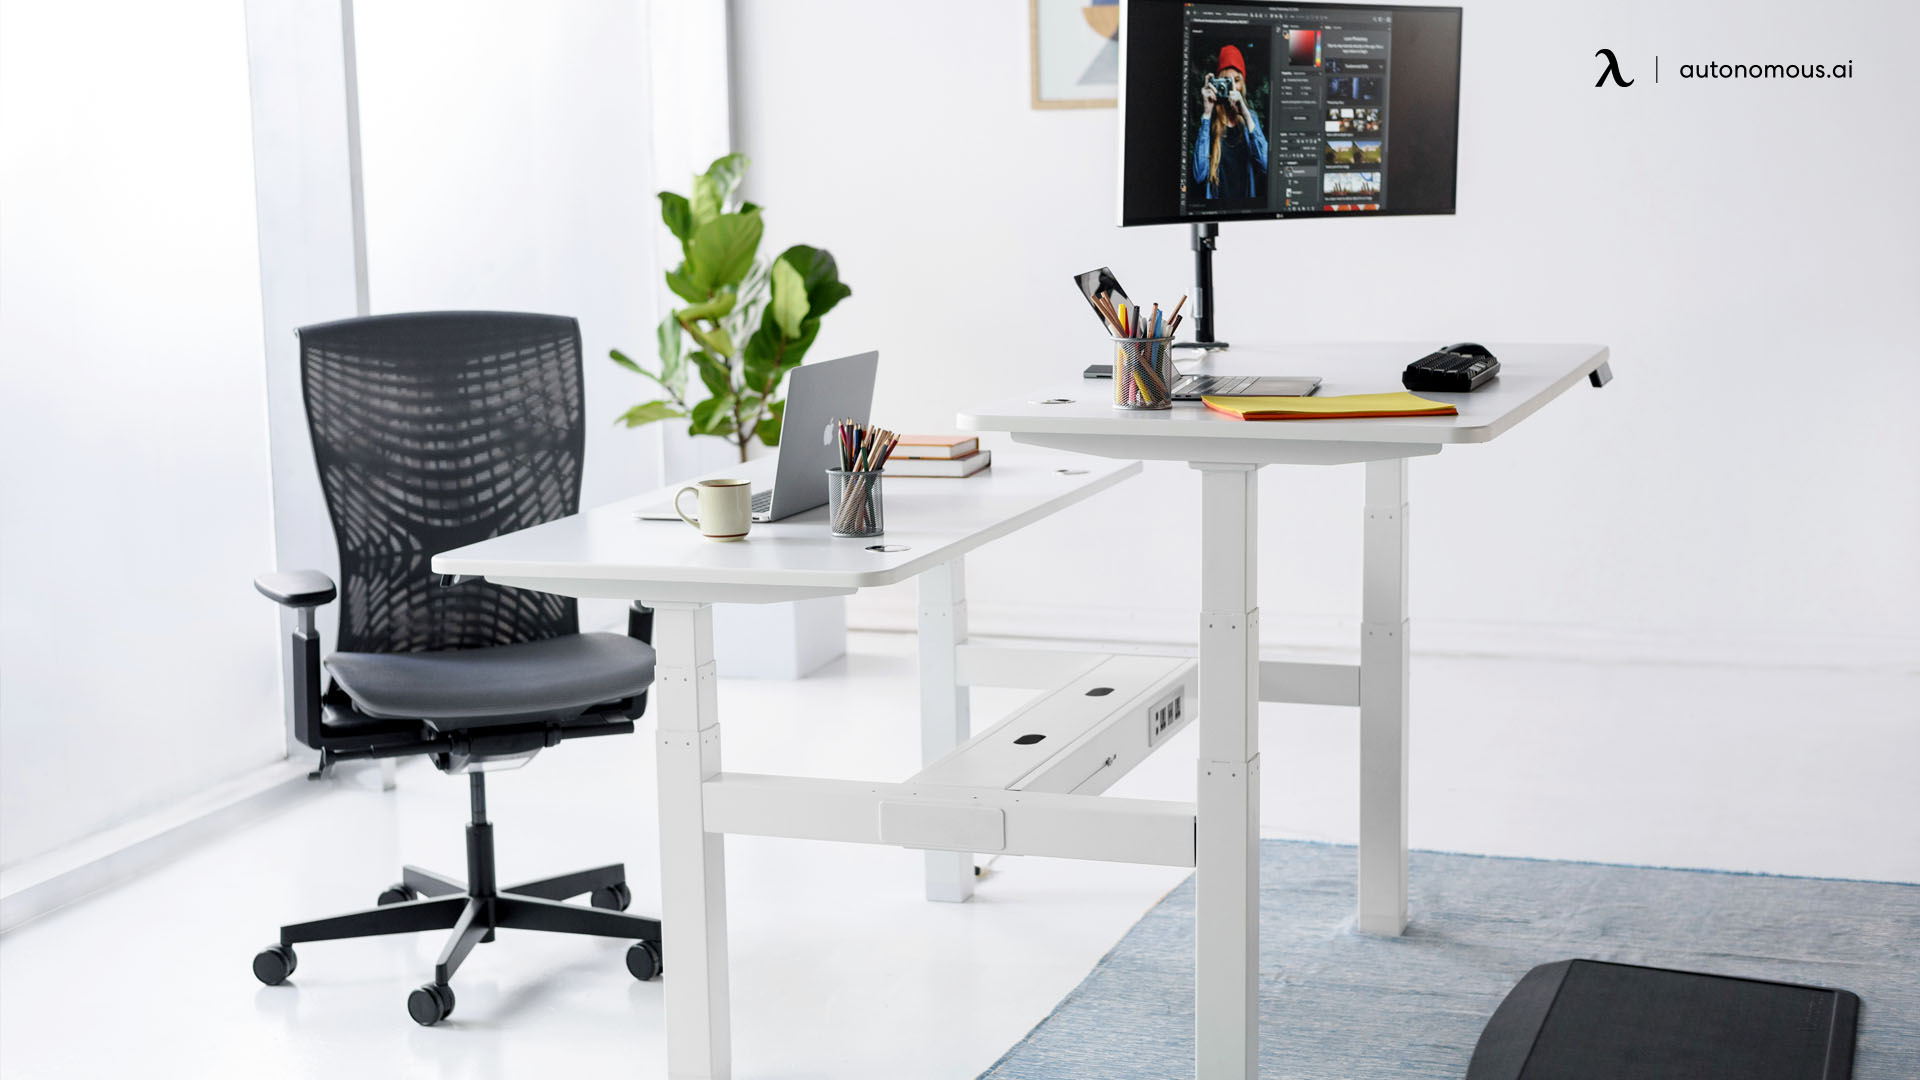 Why Do You Need an Ergonomic Chair